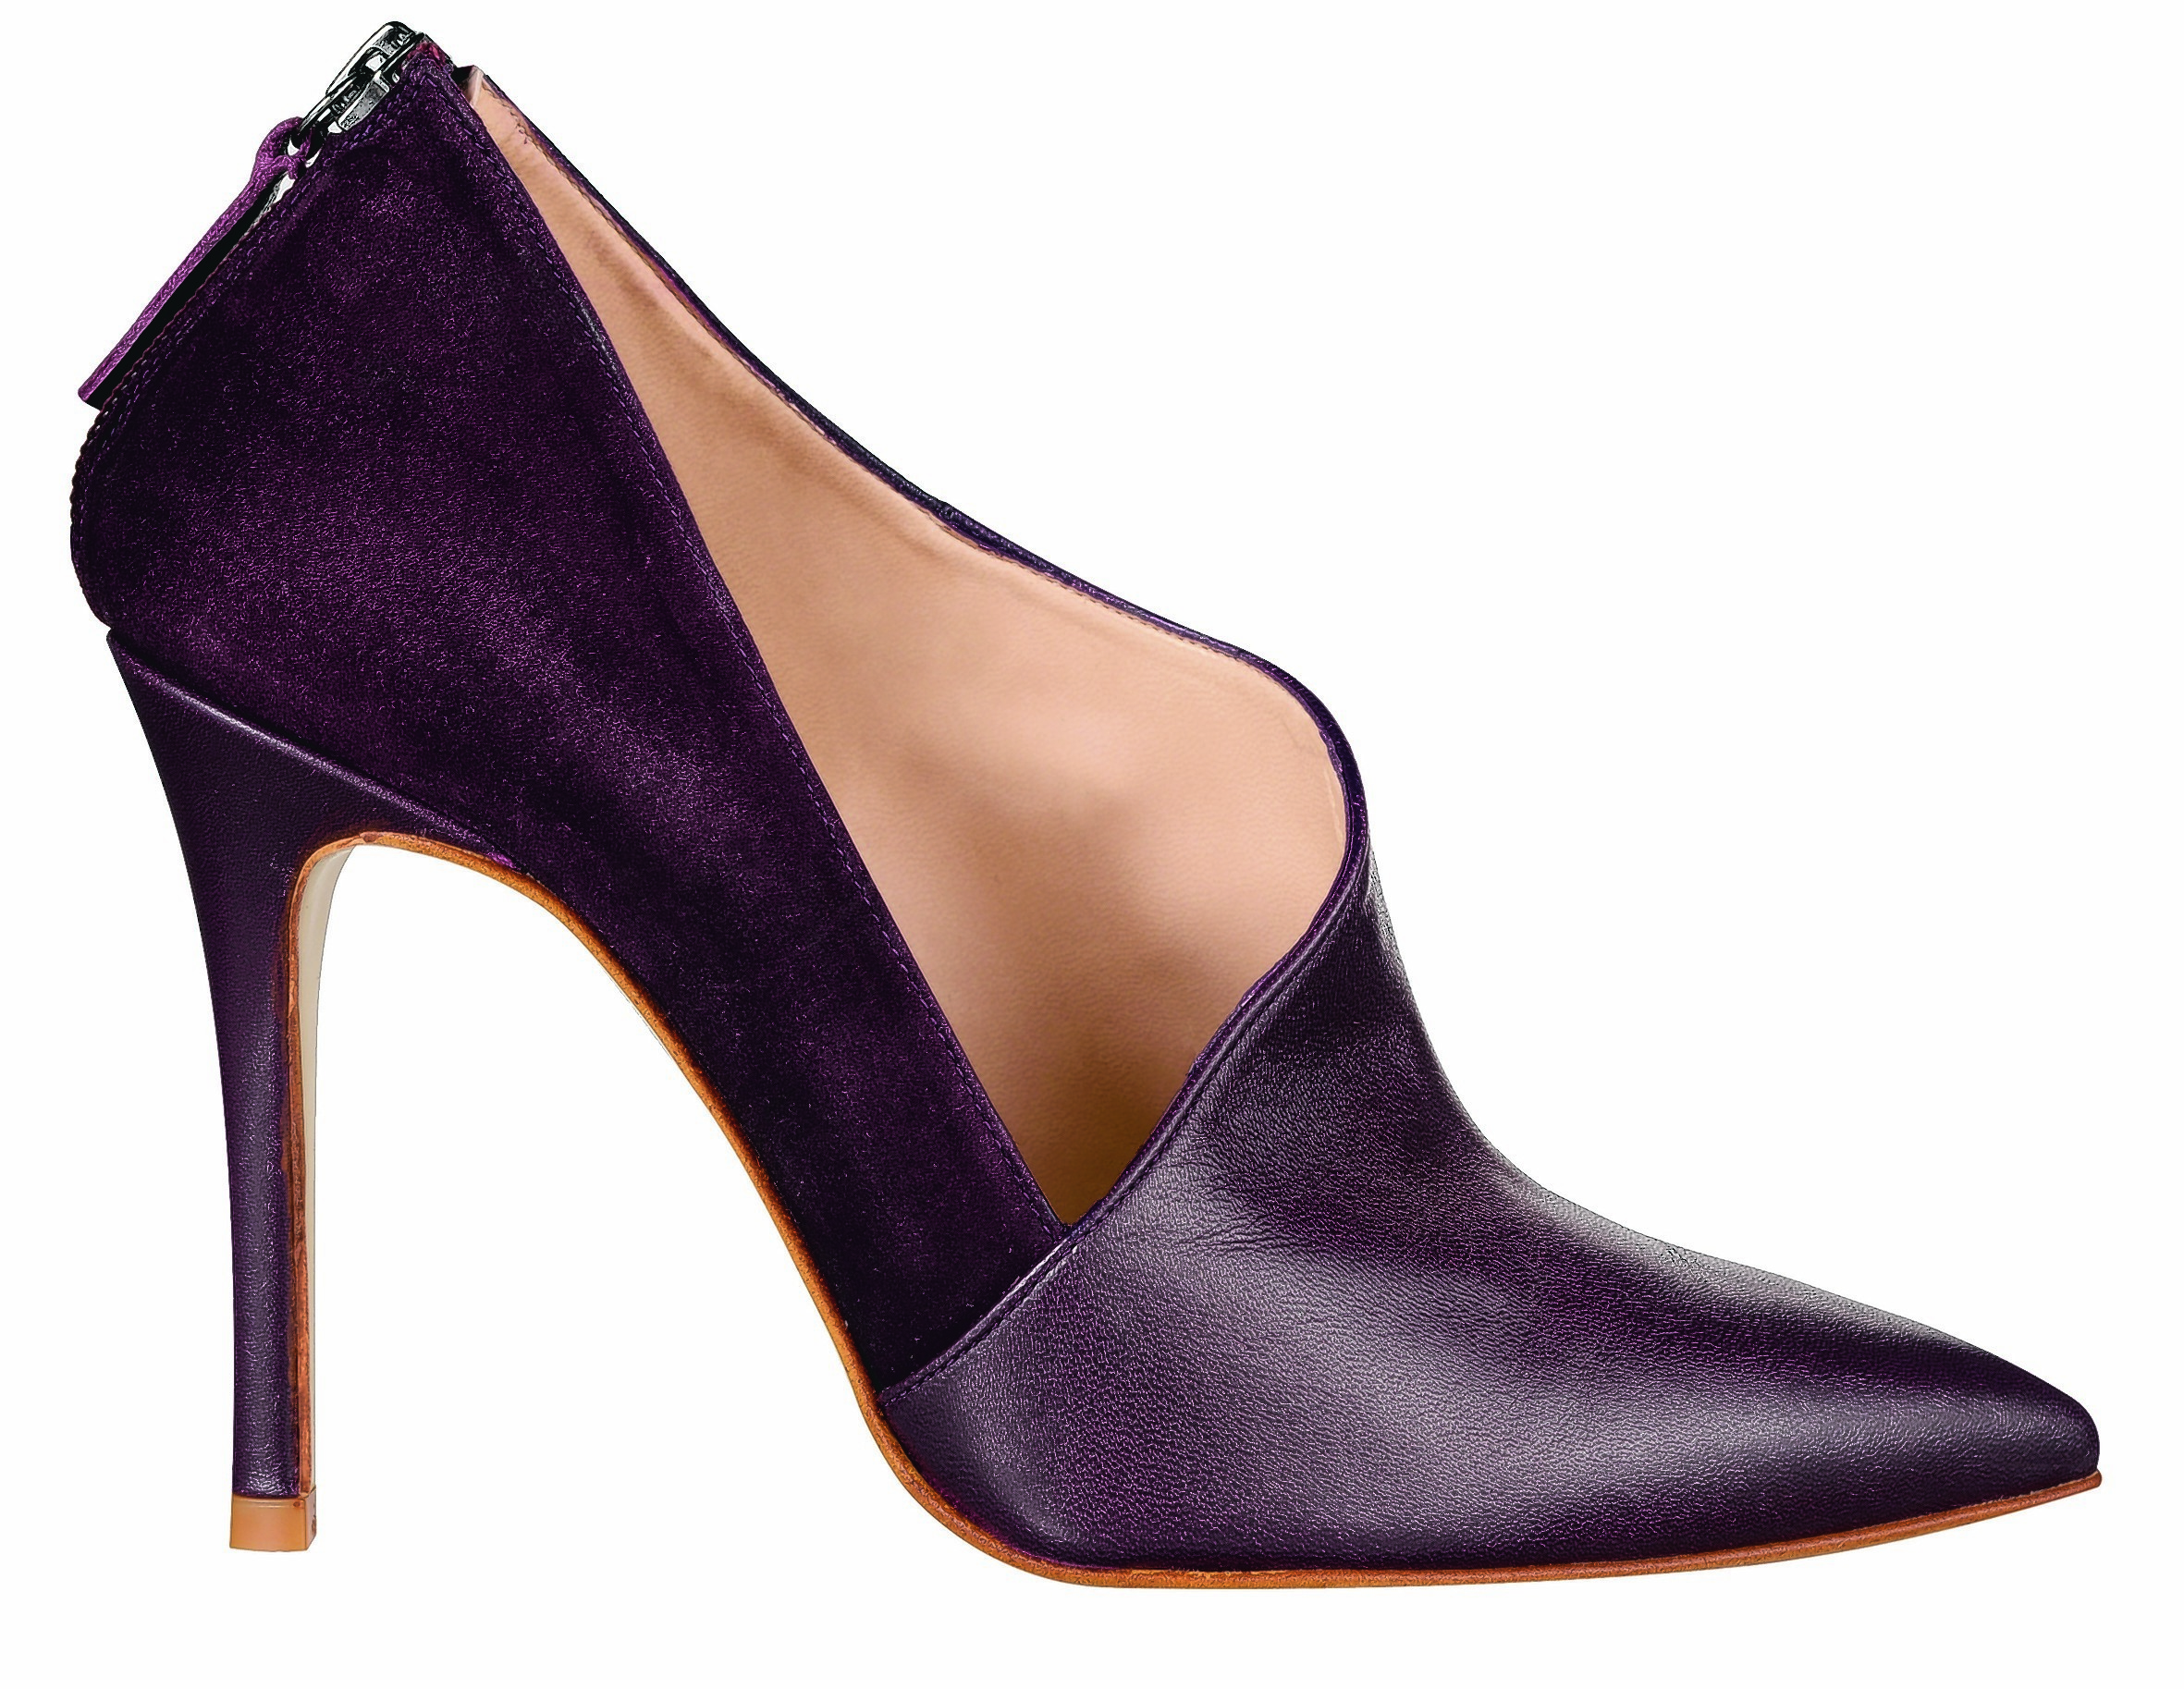 Wallis Berry Leather Asymmetric Cut Show Boot, currently reduced to £66.50 from £95